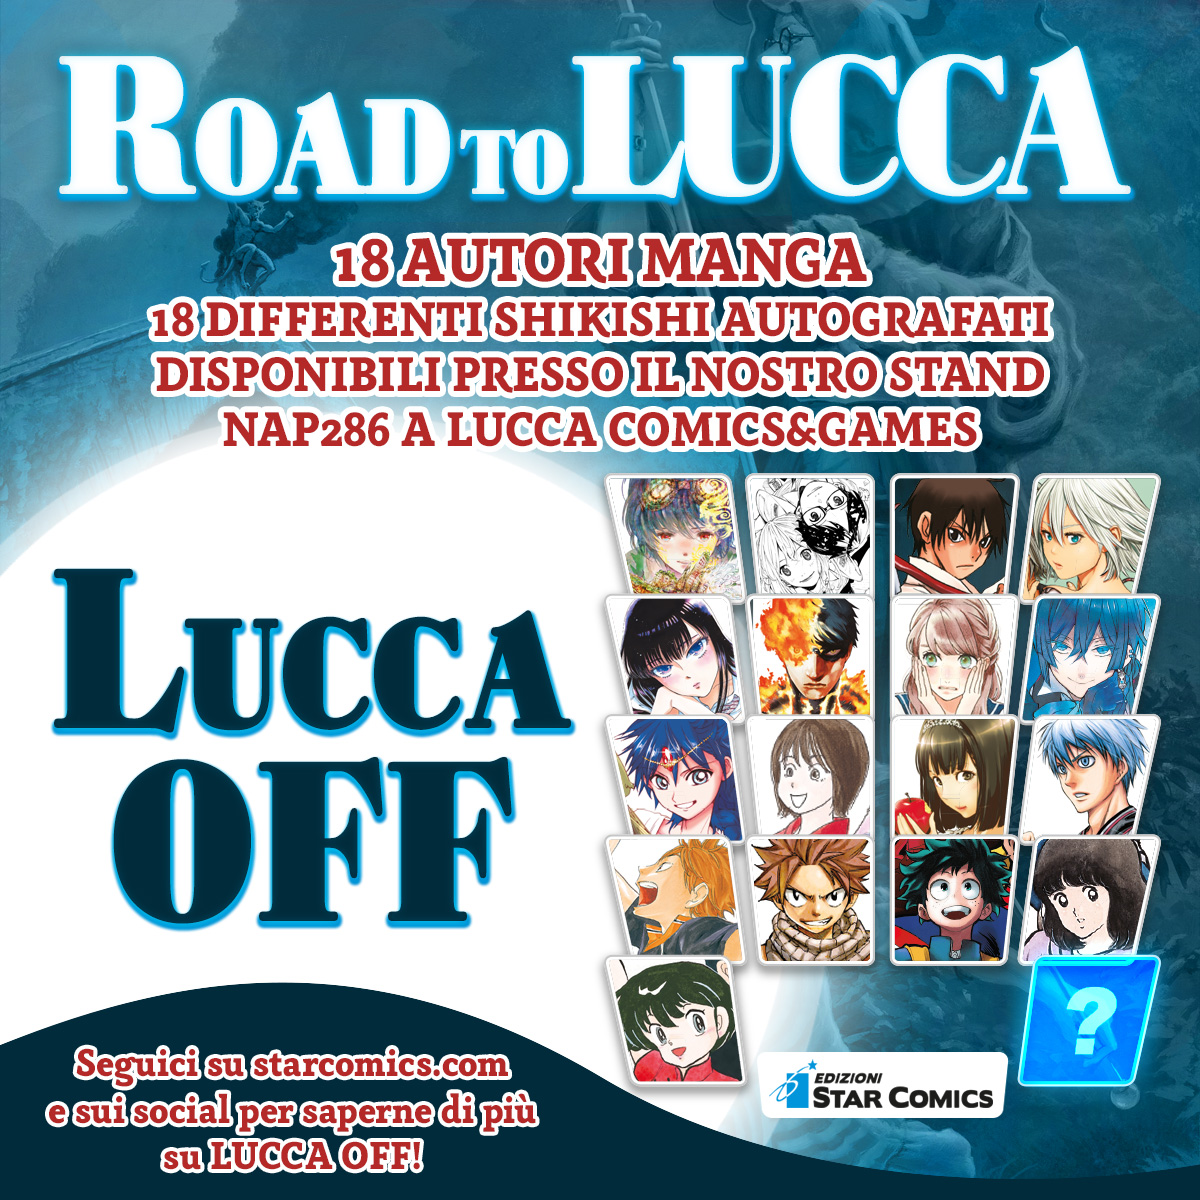 LUCCA OFF